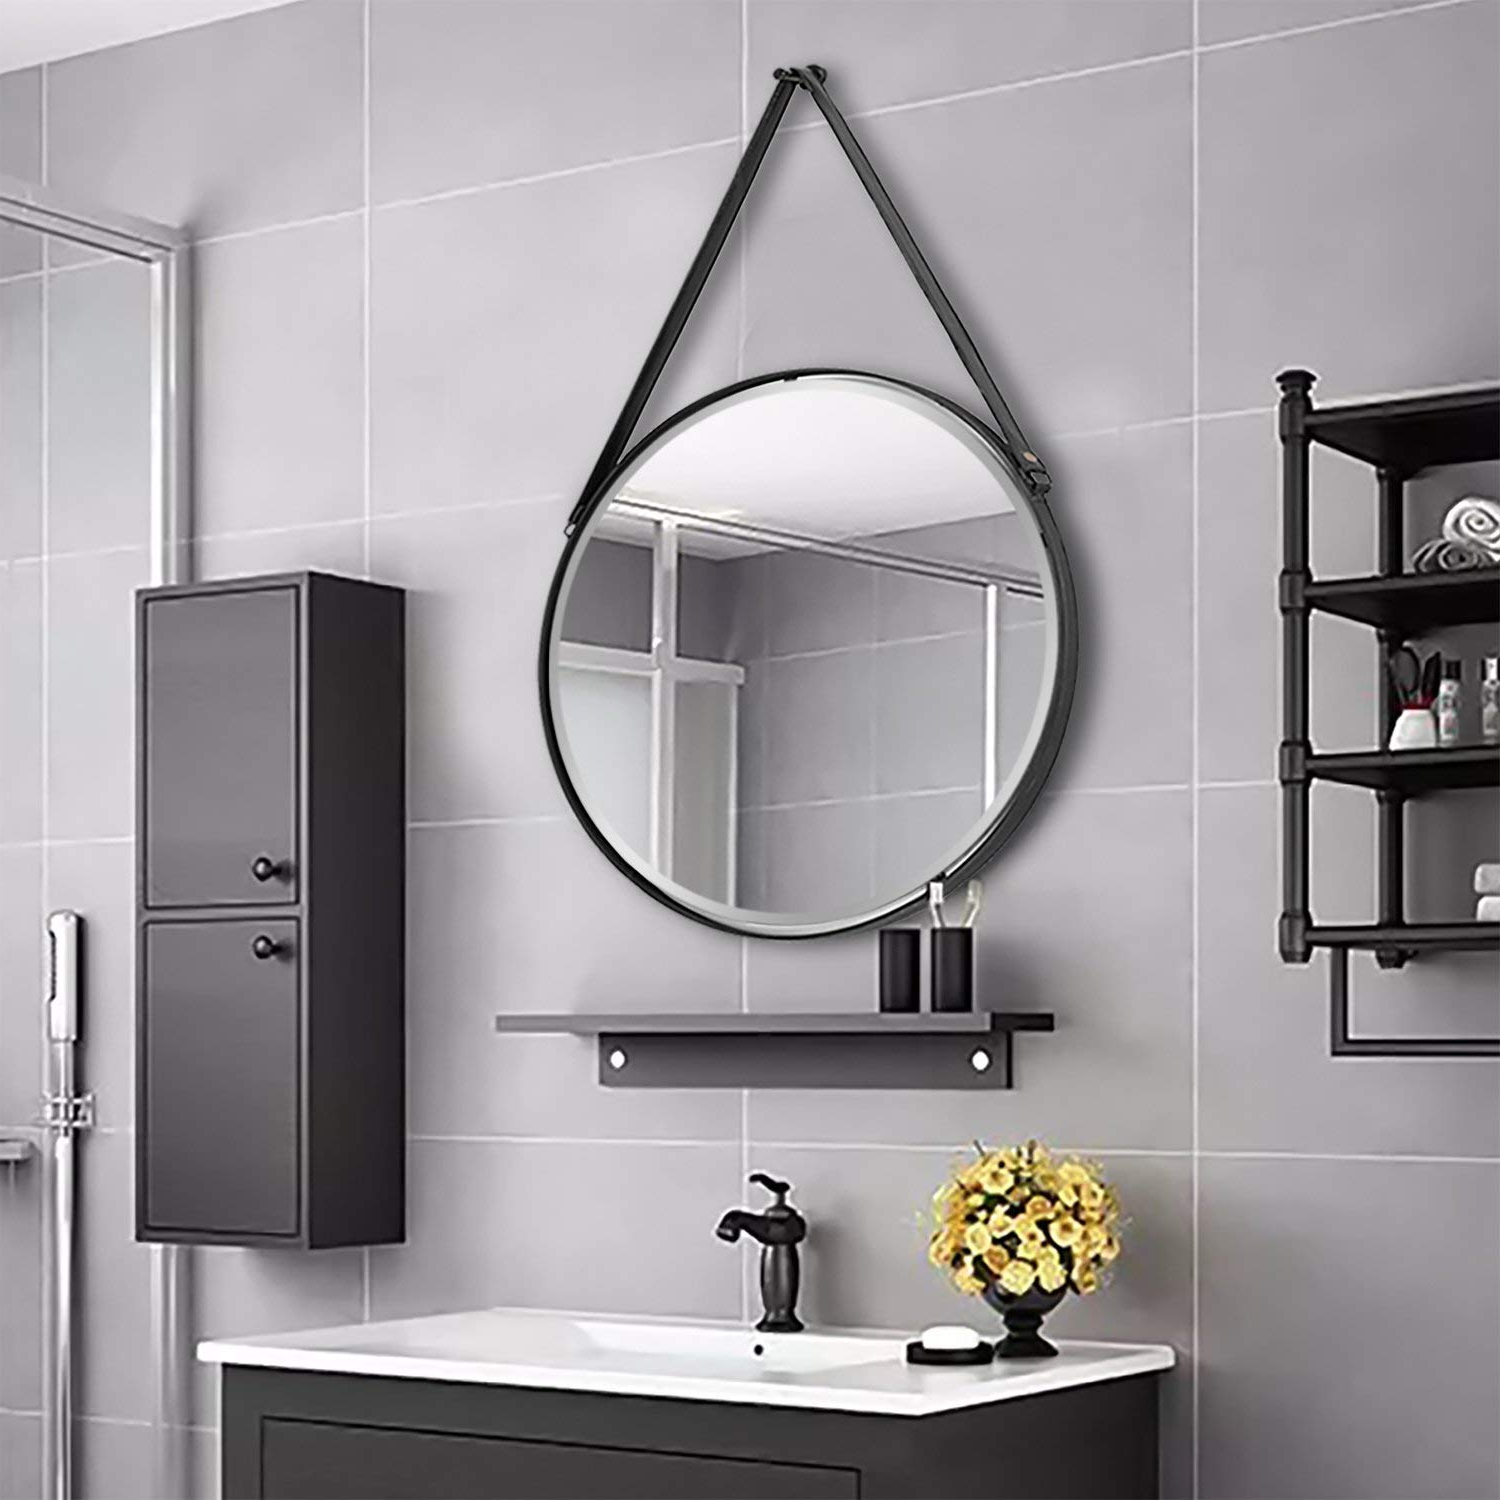 Newest Bathroom Mirrors Round Lowes Black Frame Vanity Textile Mirror Metal Pertaining To Hanging Wall Mirrors For Bathroom (Gallery 11 of 20)